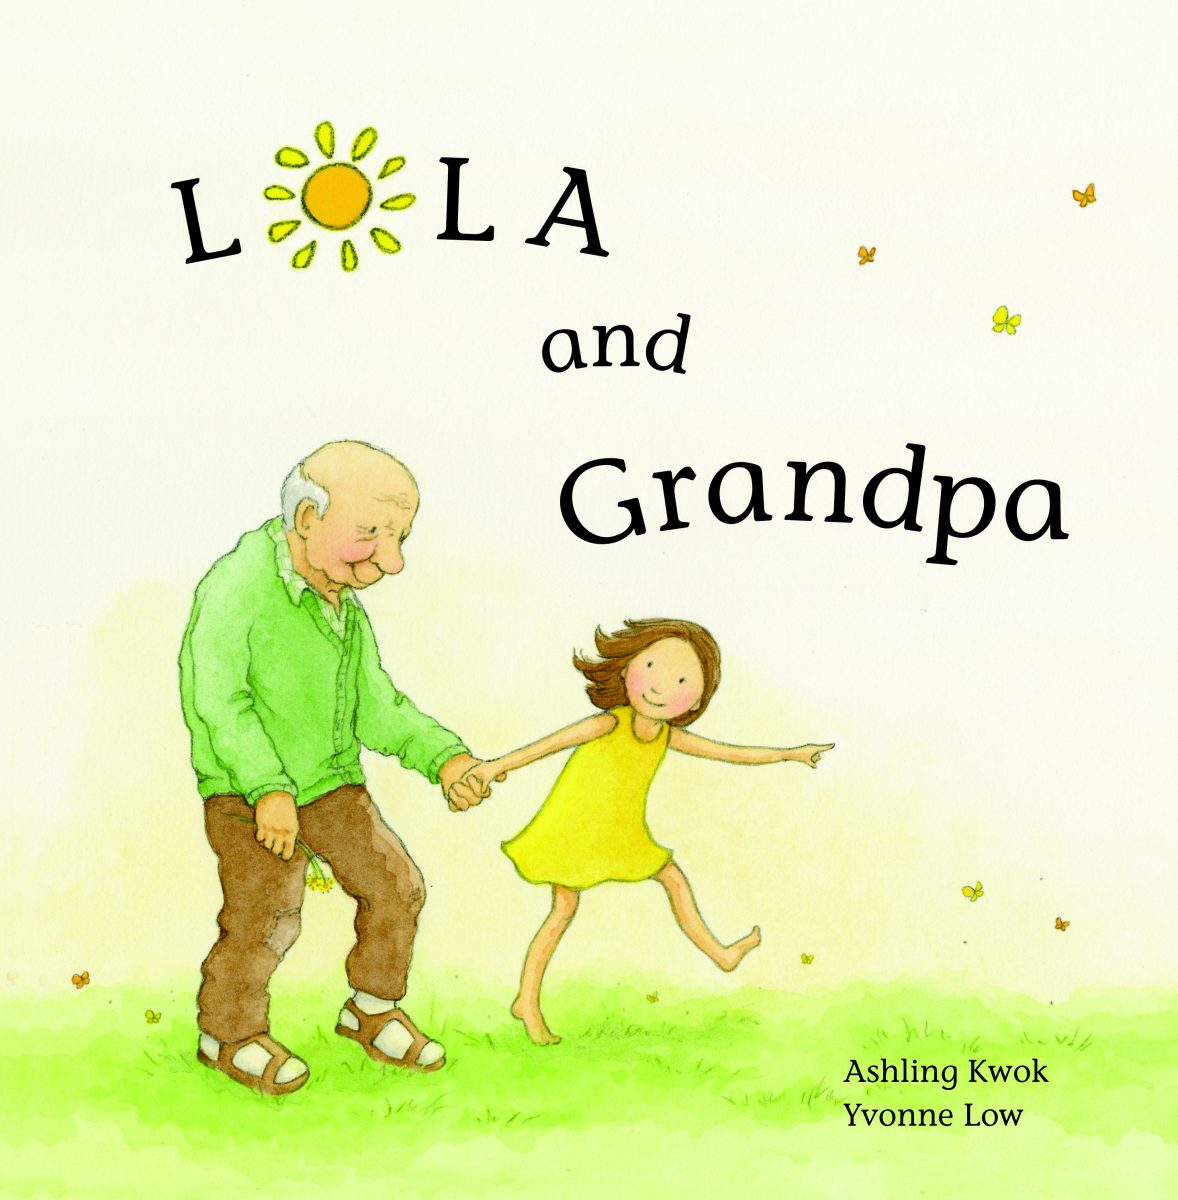 Lola and Grandpa by Ashling Kwok and Yvonne Low